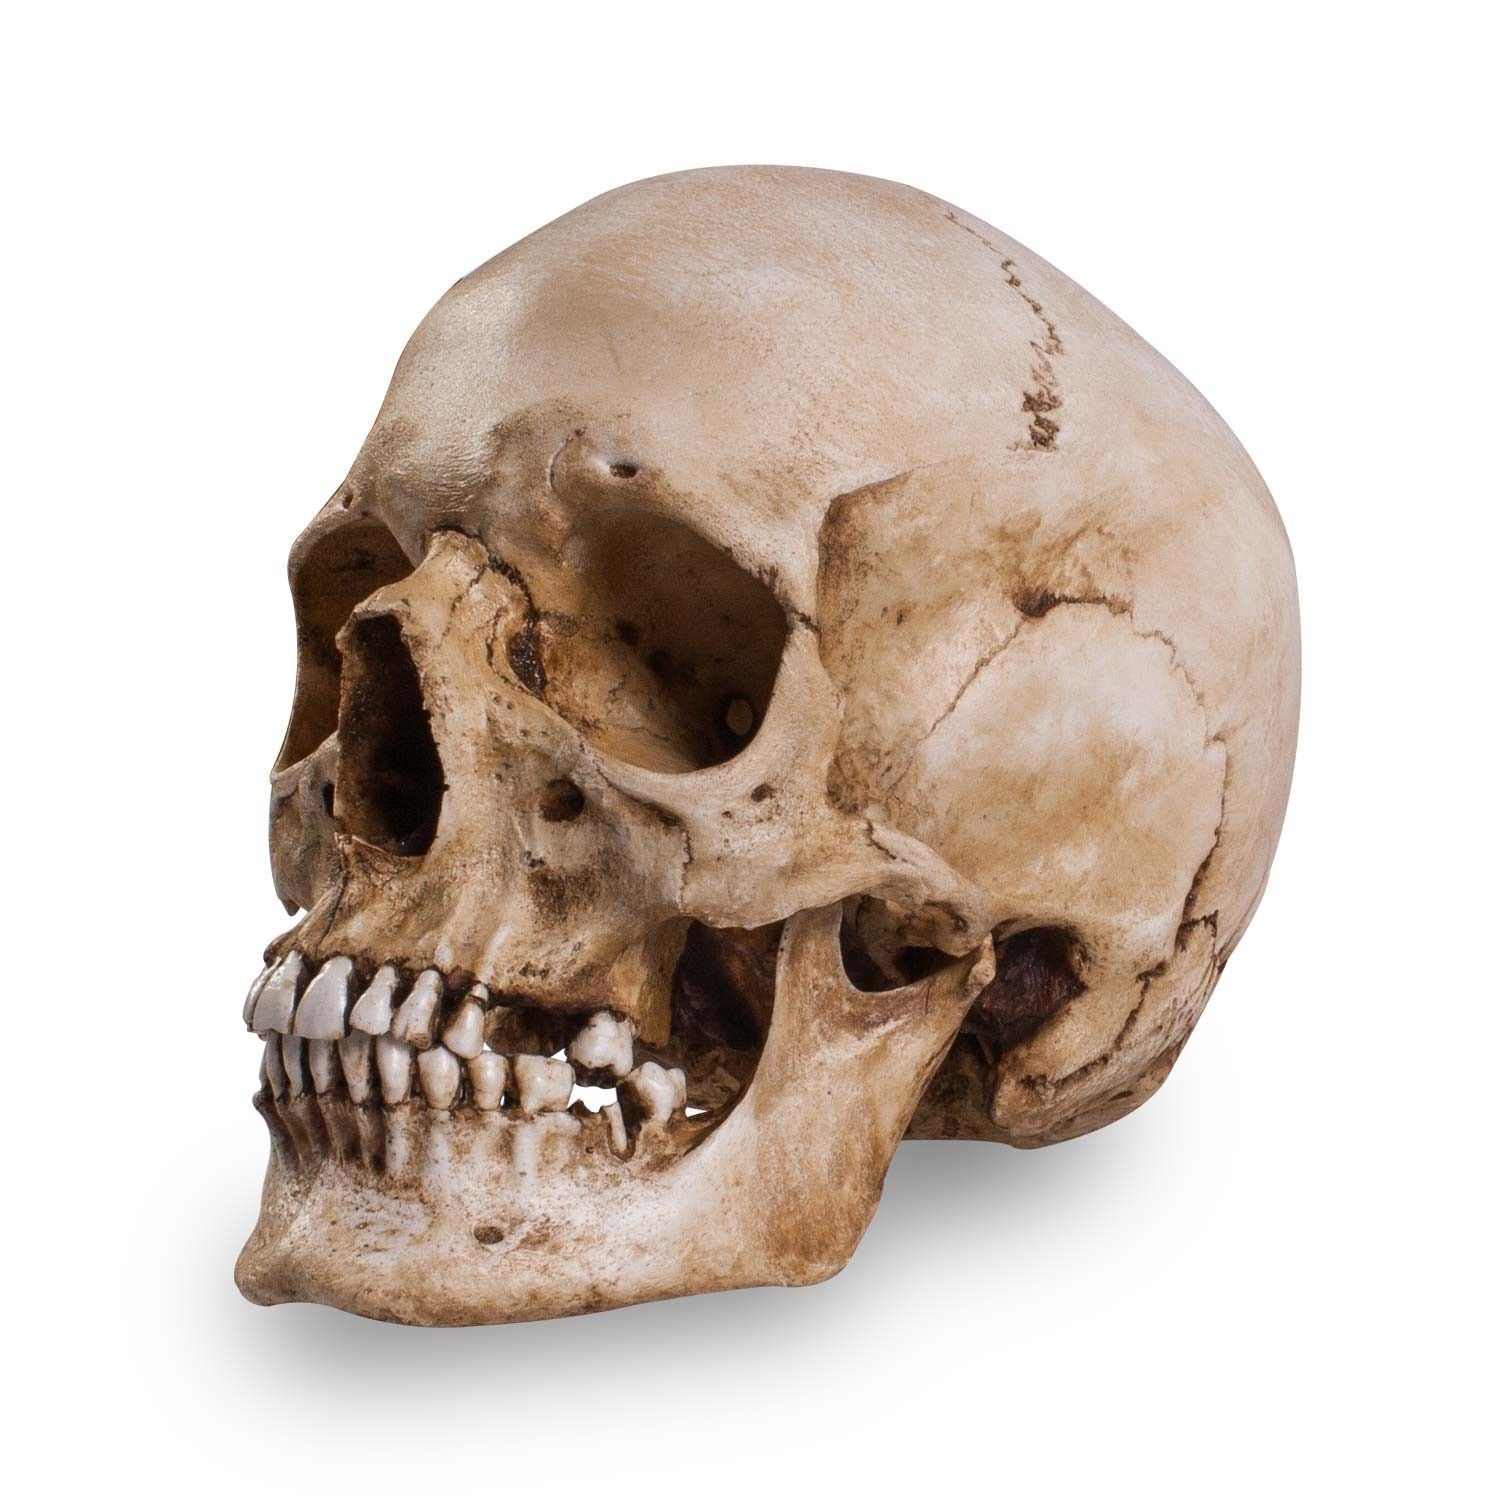 Female Human Skull | Skull Shoppe- Adult Female Caucasian ...